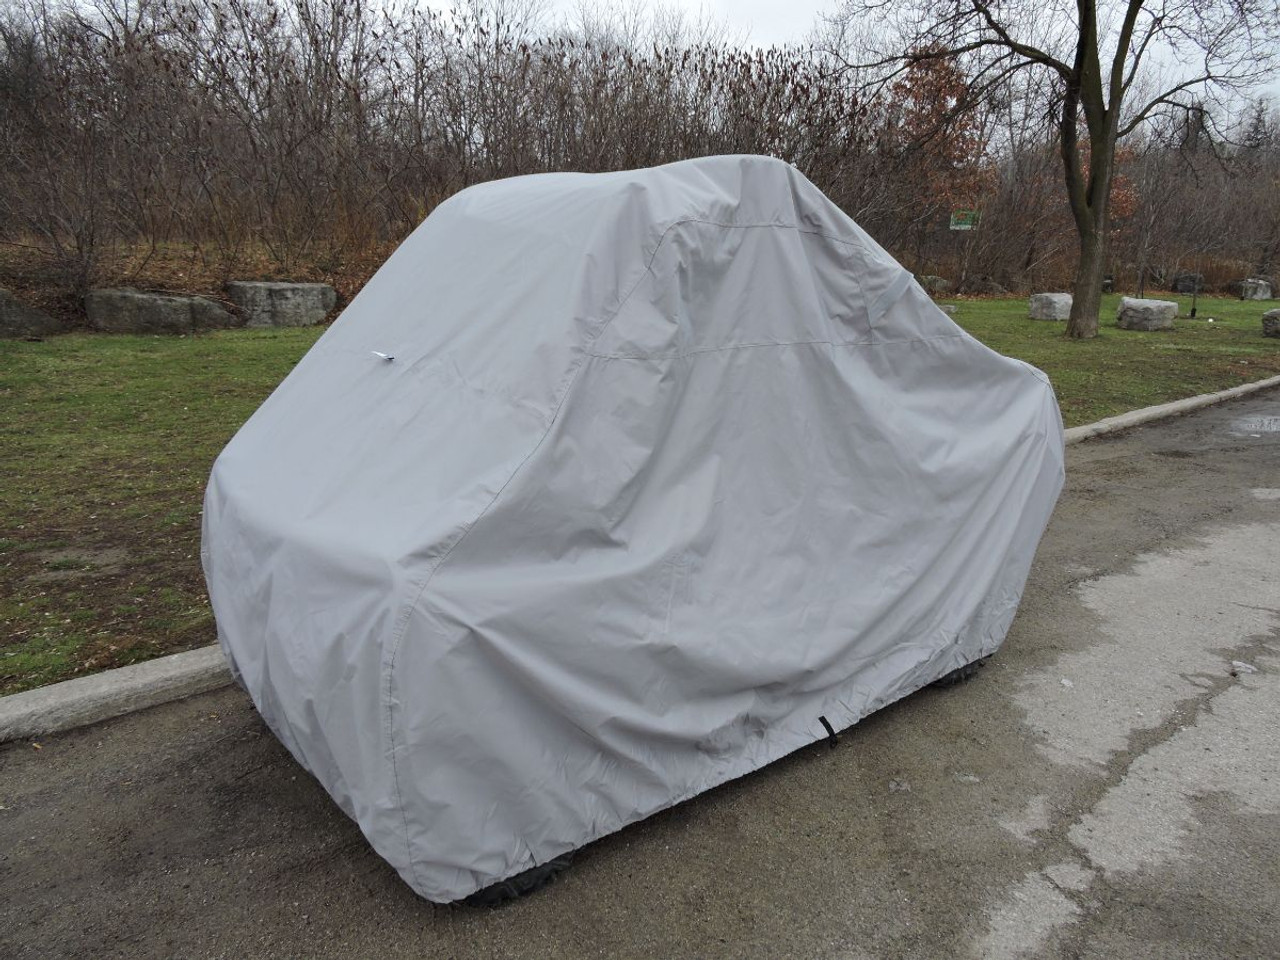 Venture UTV side by side cover with premium all weather marine fabric